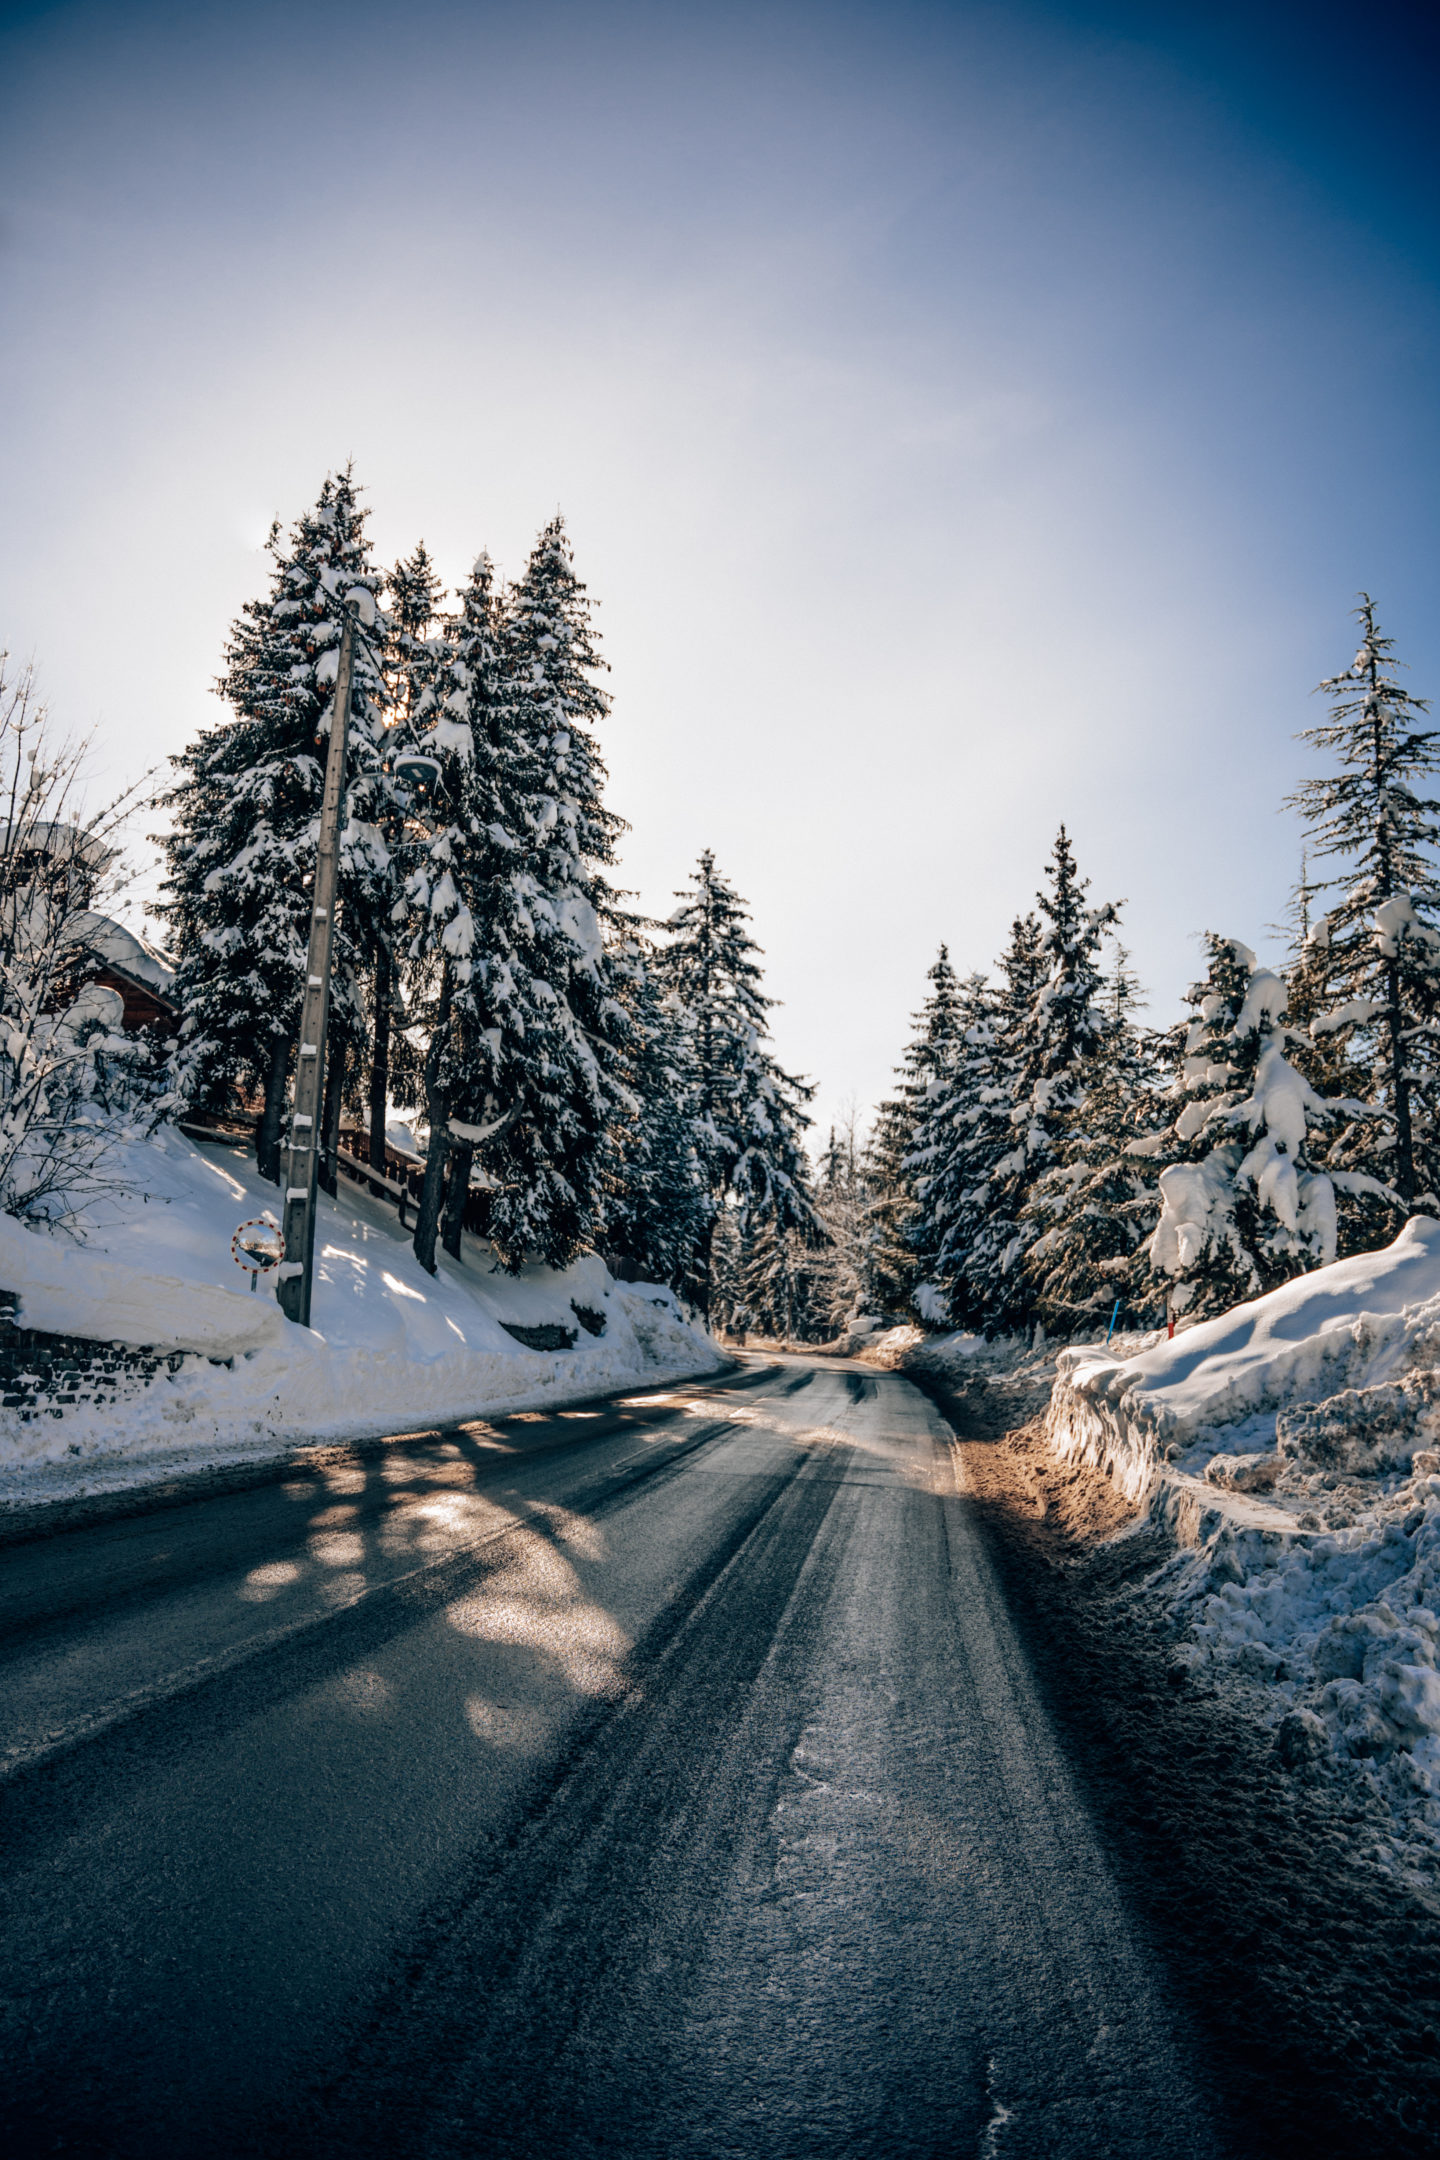 Road tripping in the French Alps